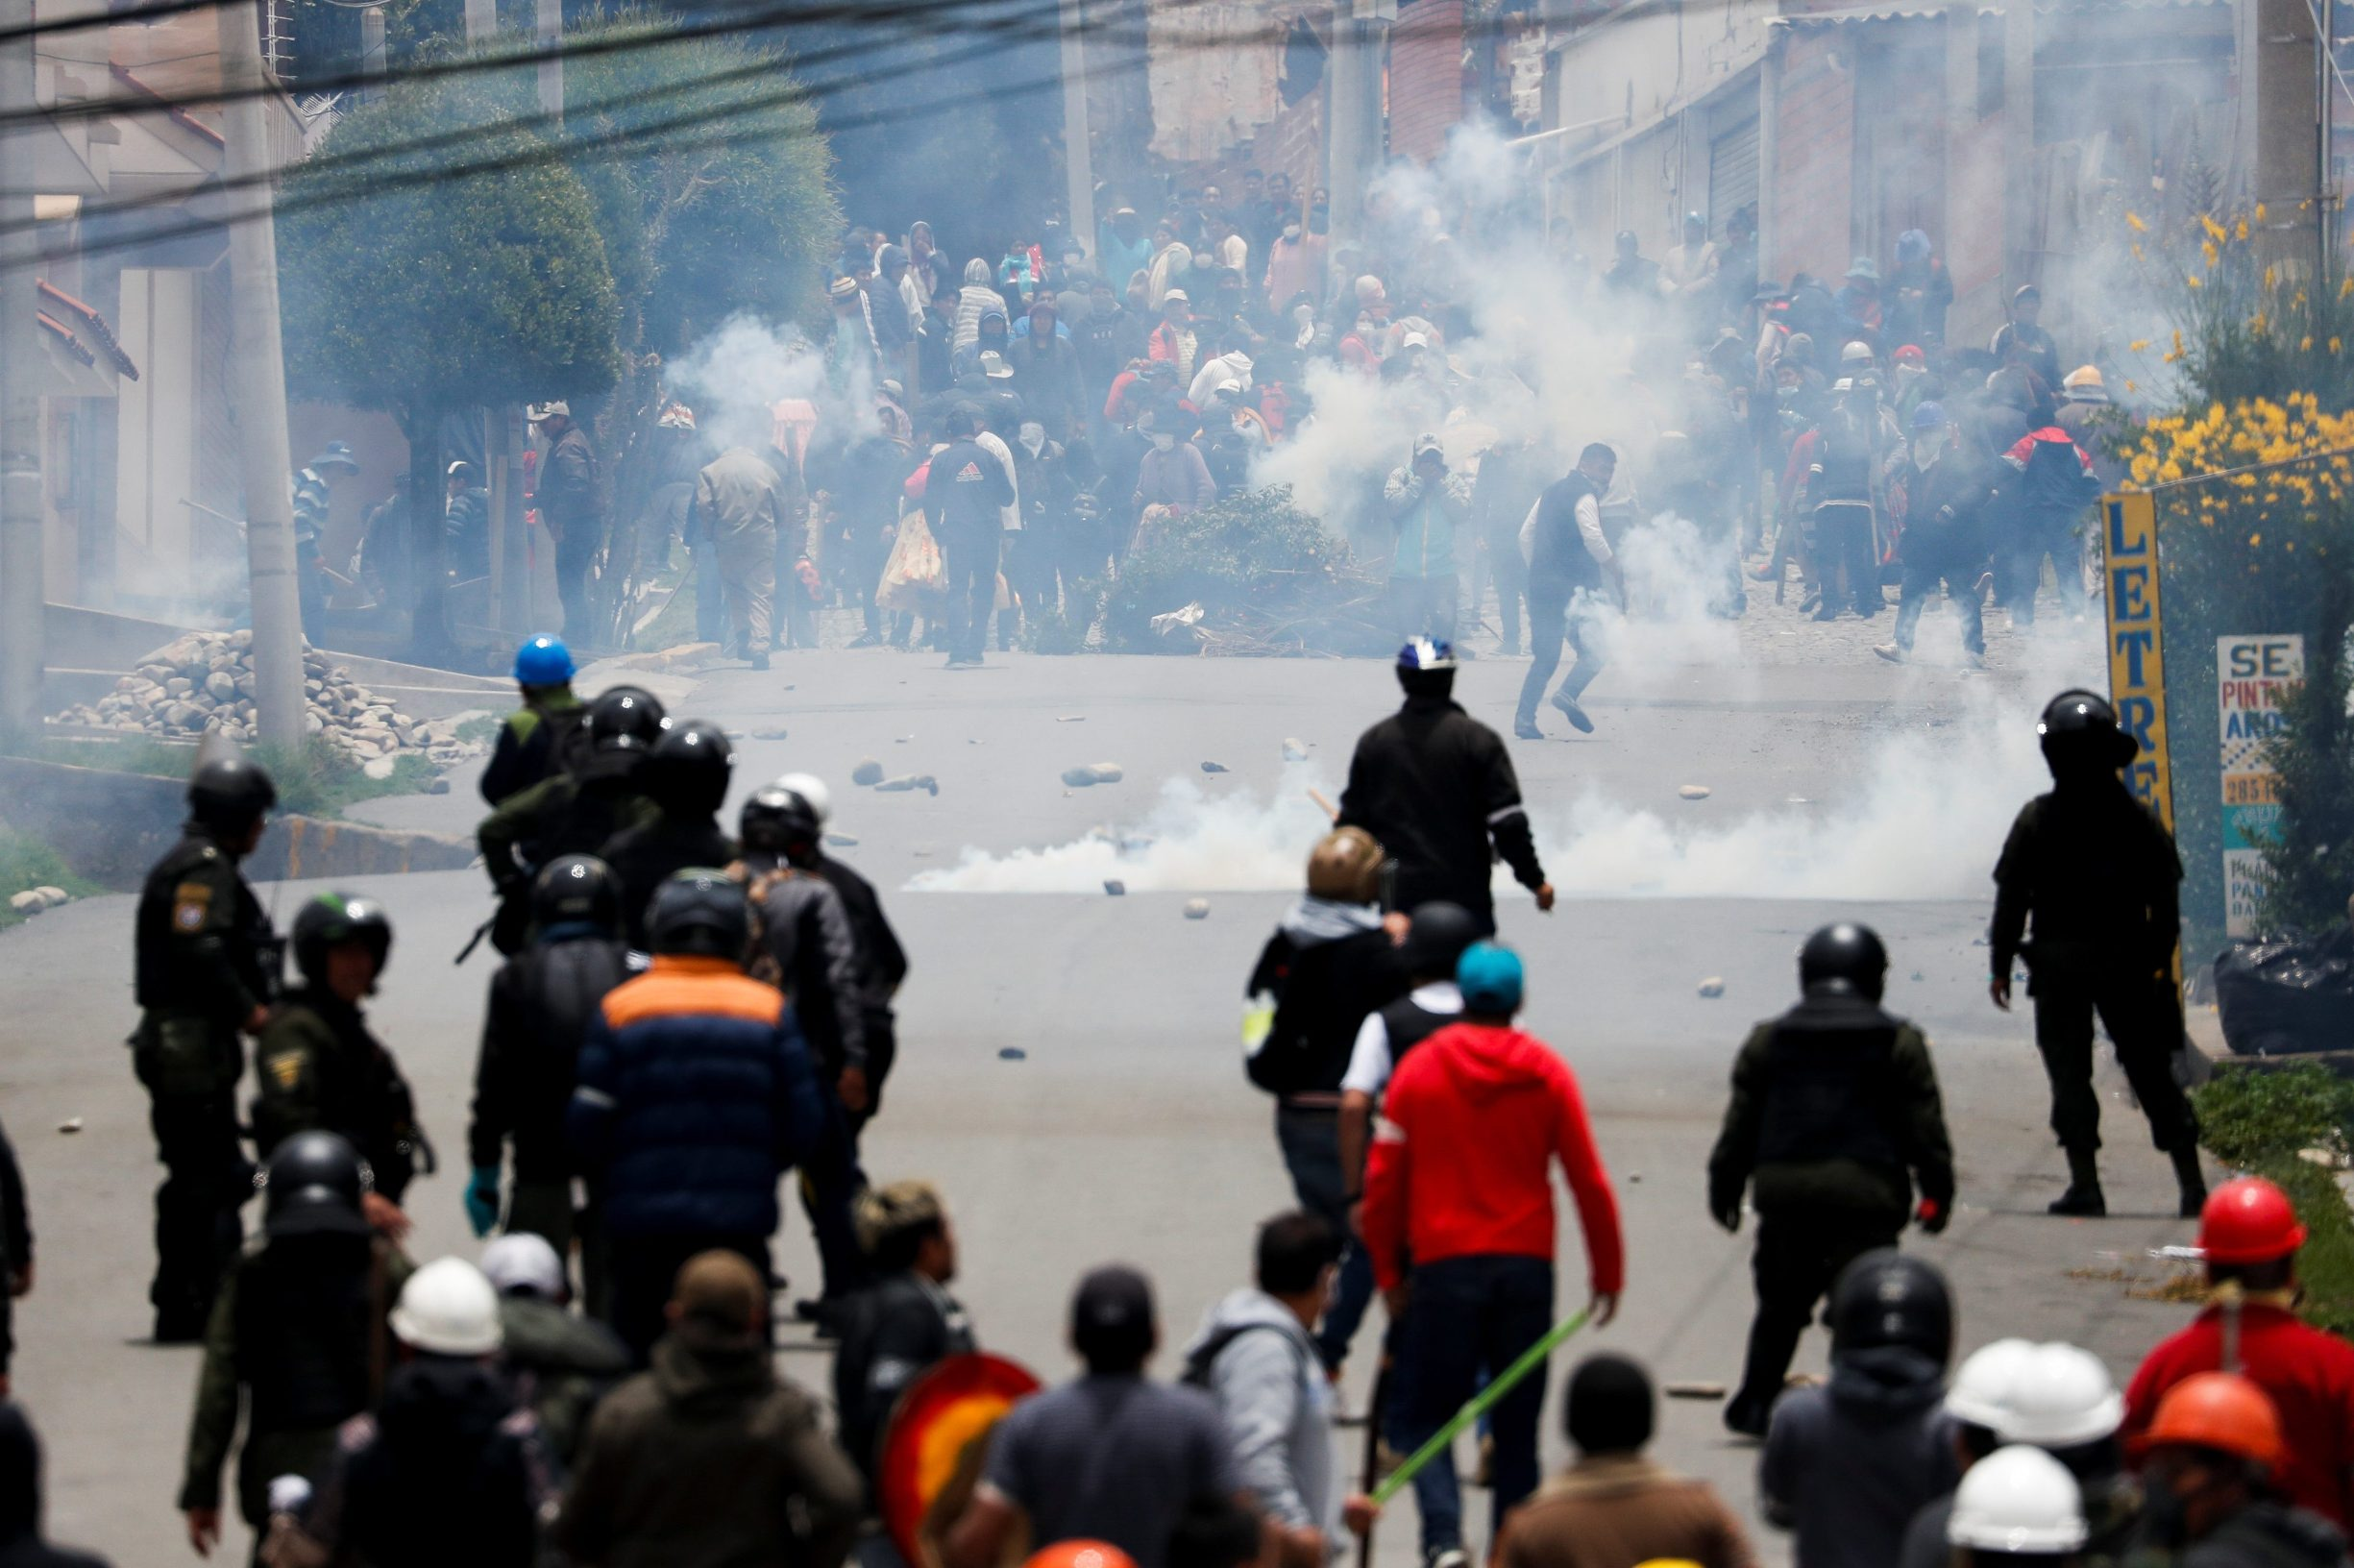 Supporters of Bolivian President Evo Morales and opposition supporters clash during a protest after Morales announced his resignation on Sunday, in La Paz Bolivia November 11, 2019. REUTERS/Carlos Garcia Rawlins